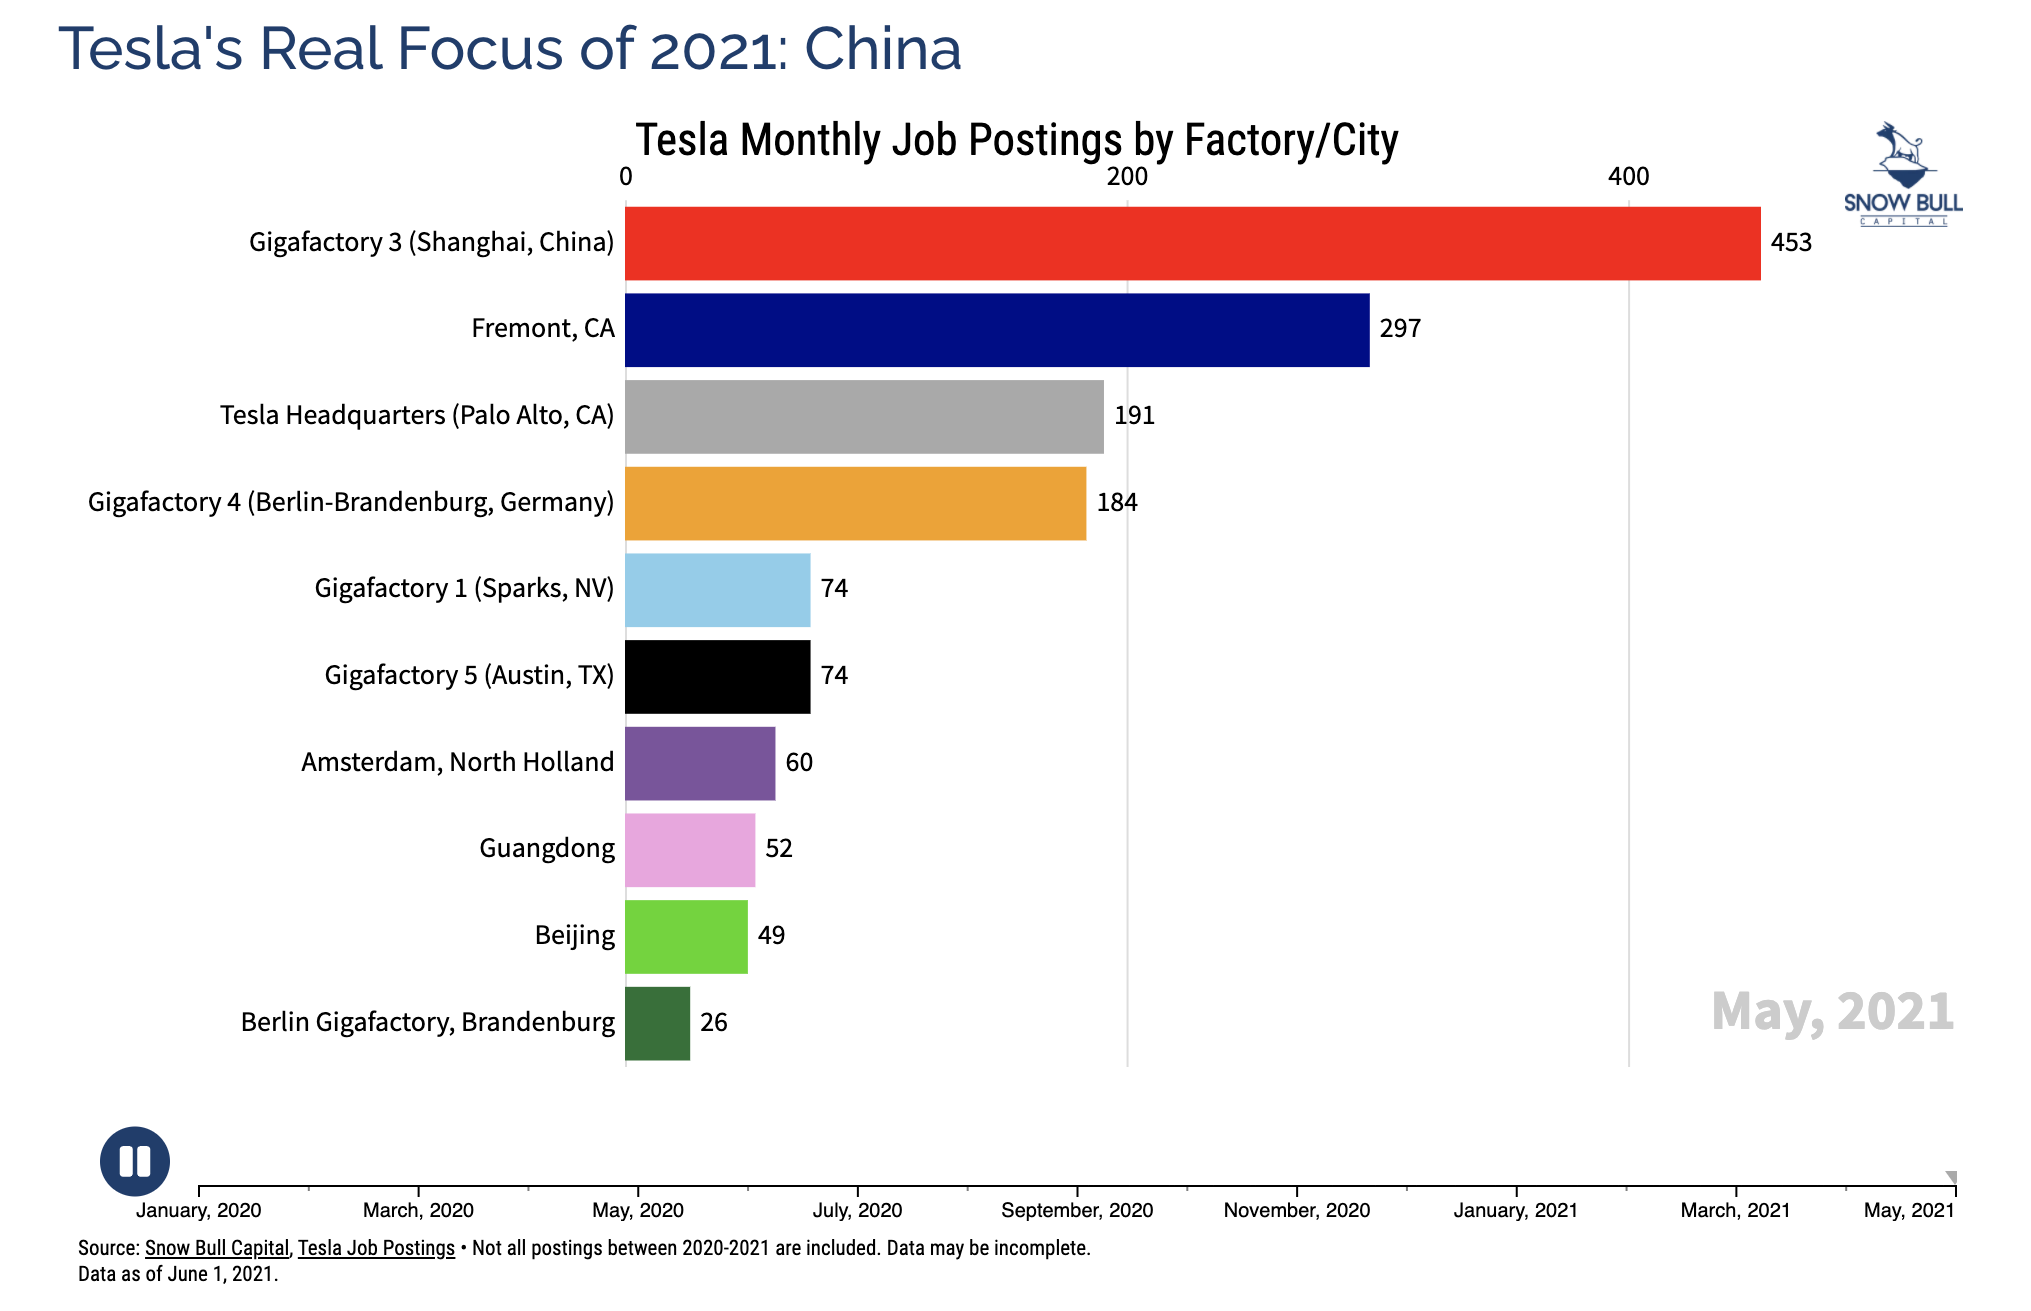 Tesla Jobs Postings by Factory May 2021 Chart courtesy of Snow Bull CleanTechnica